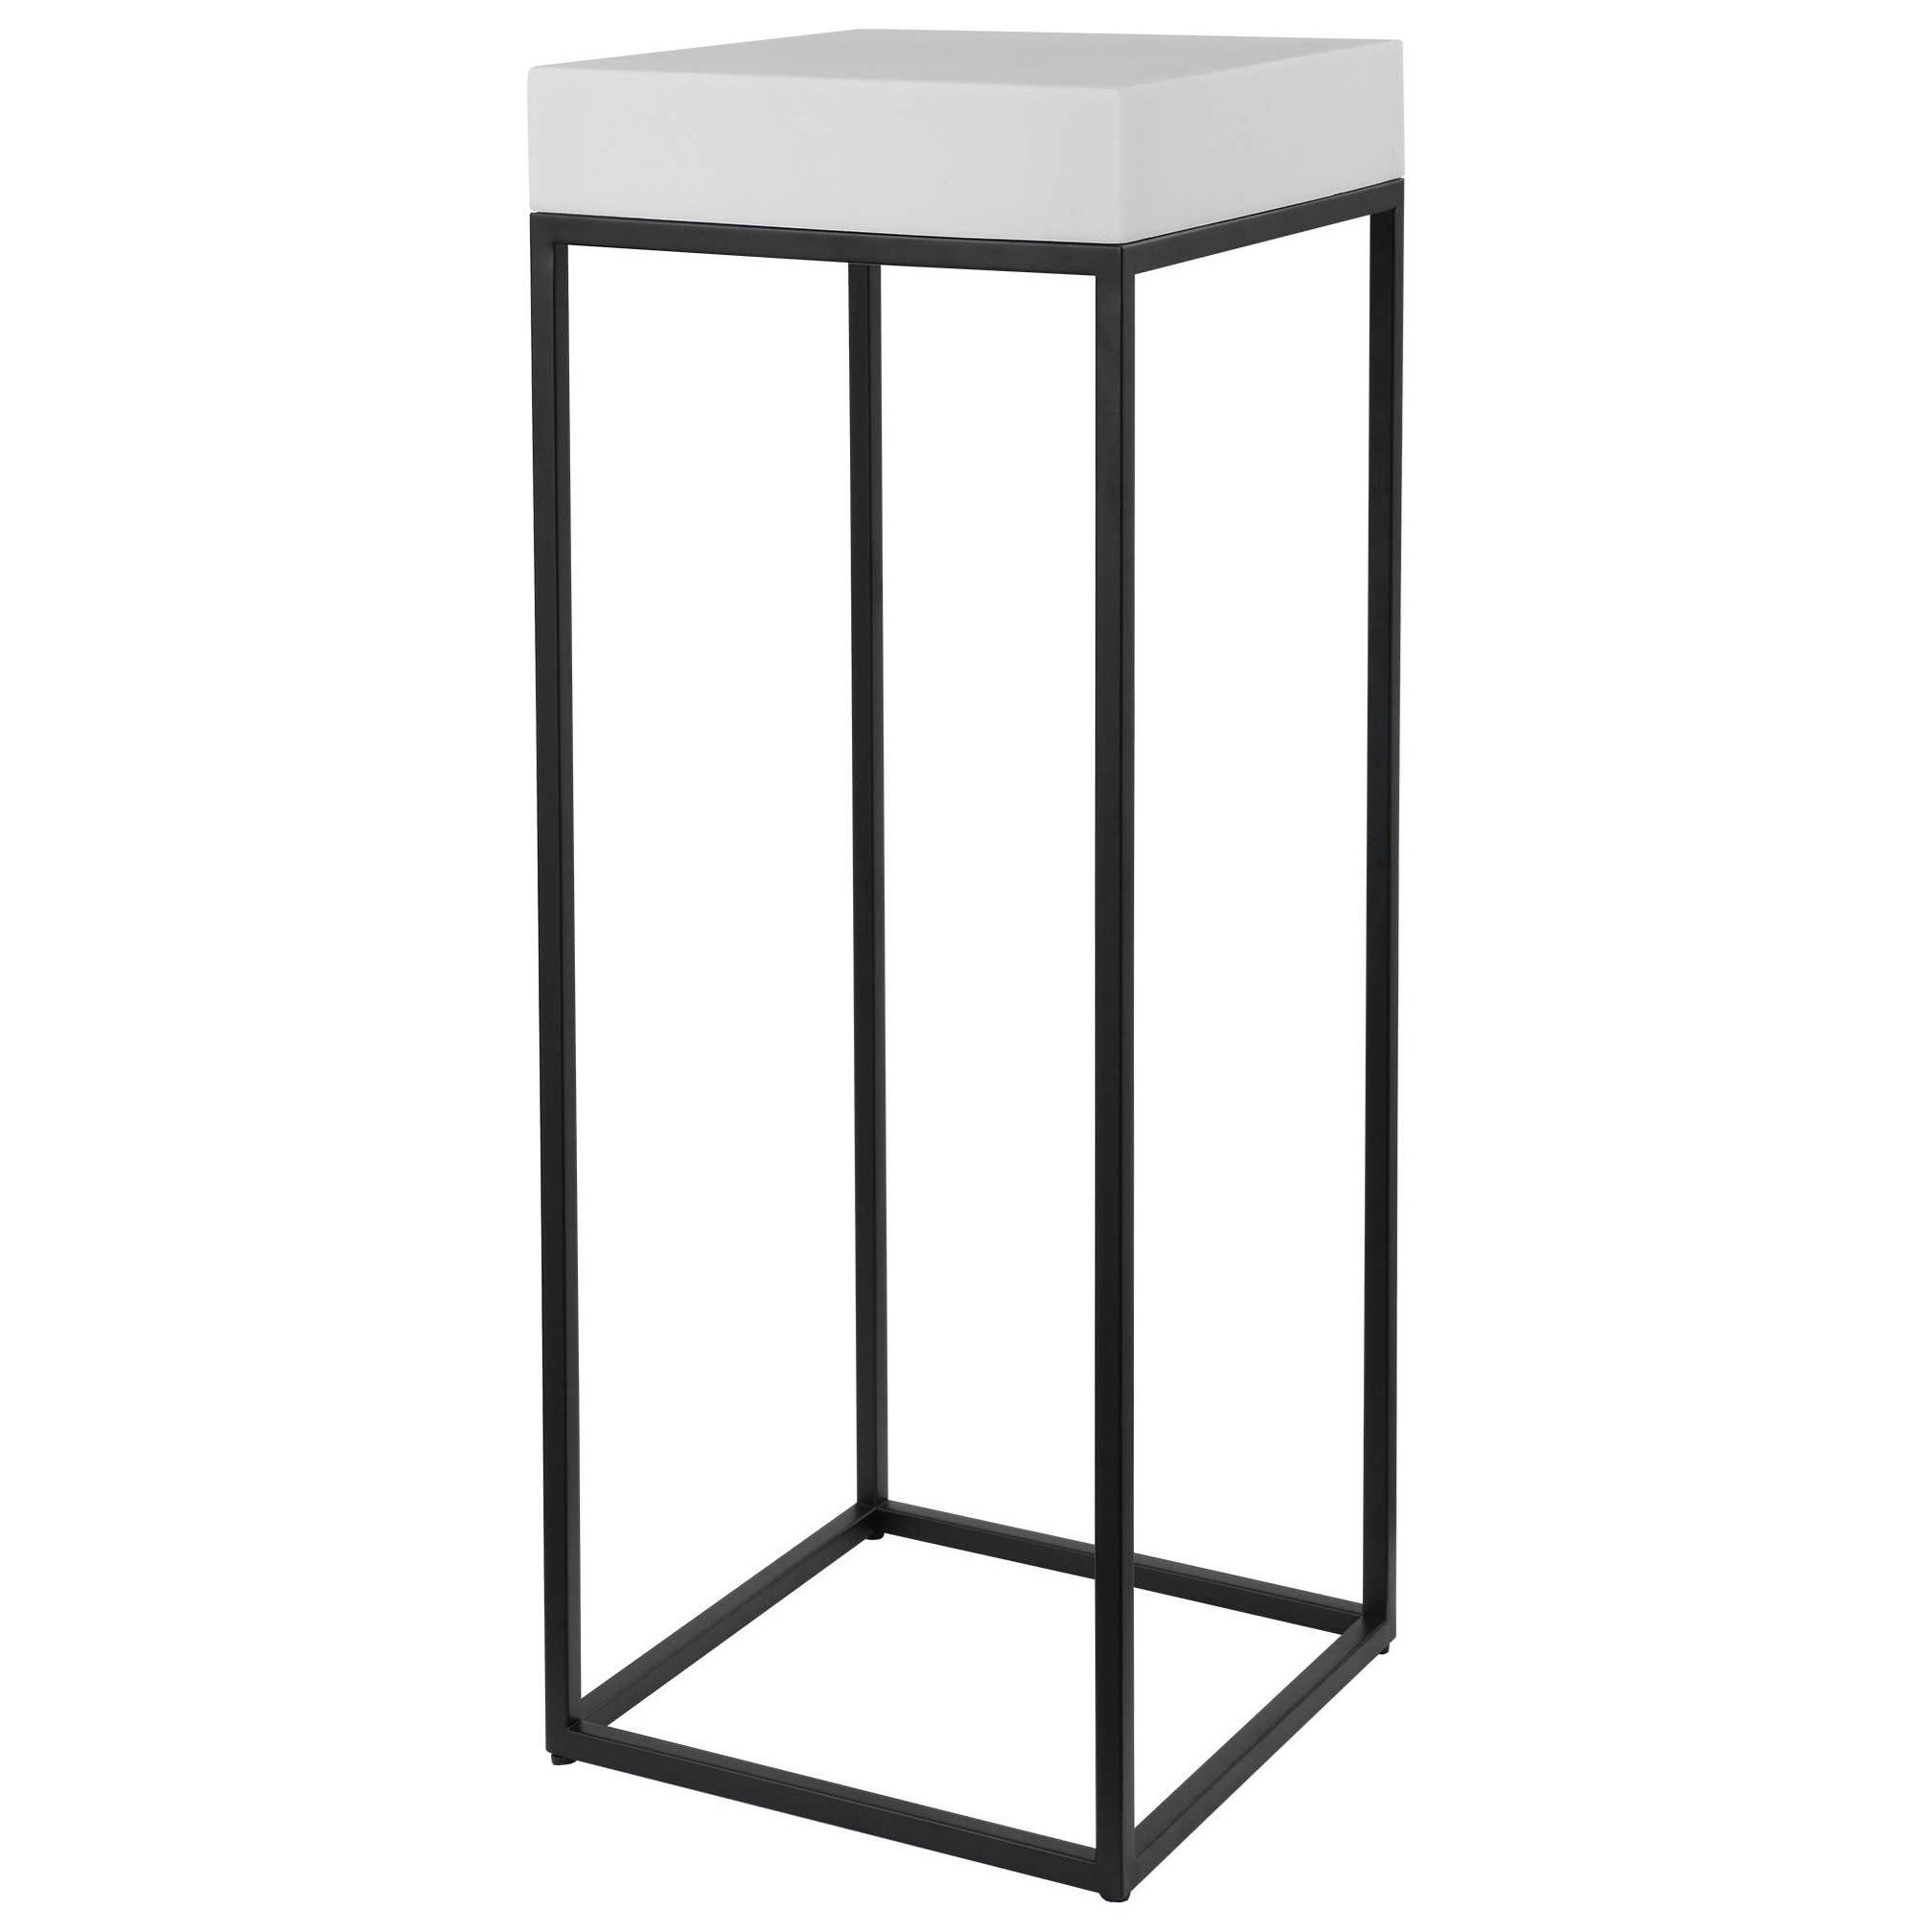 Accent Furniture - Occasional Tables Gambia Marble Plant Stand by Uttermost at Factory Direct Furniture